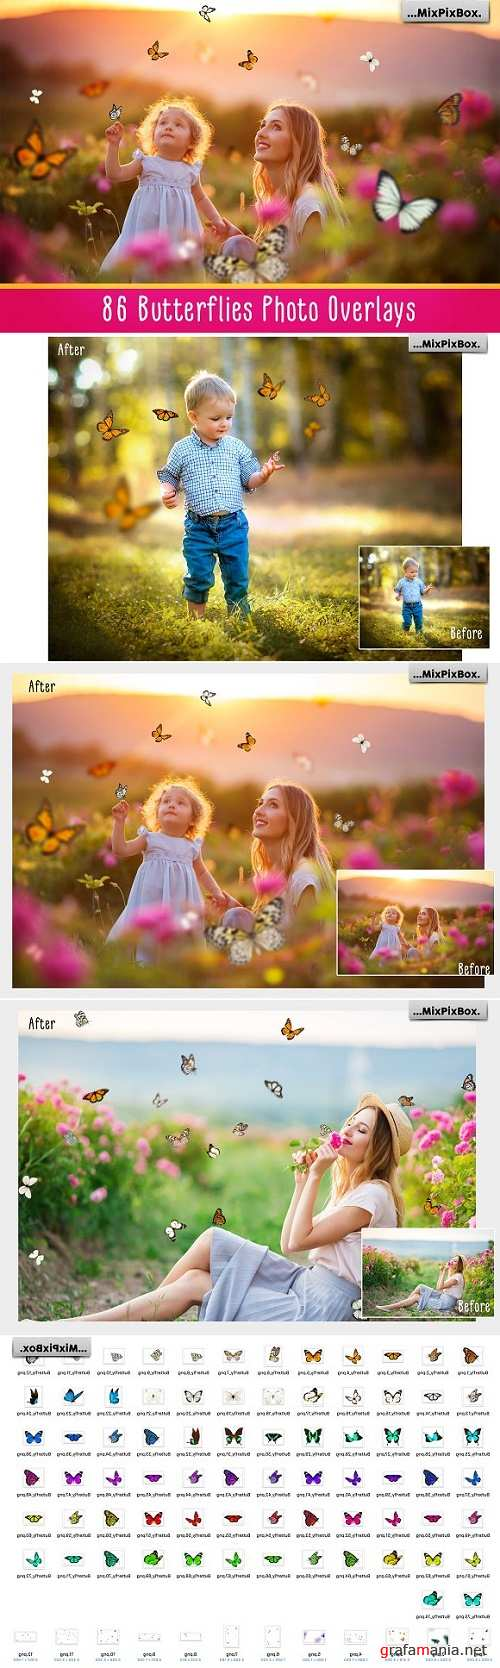 Butterflies Photo Overlays - 2572842